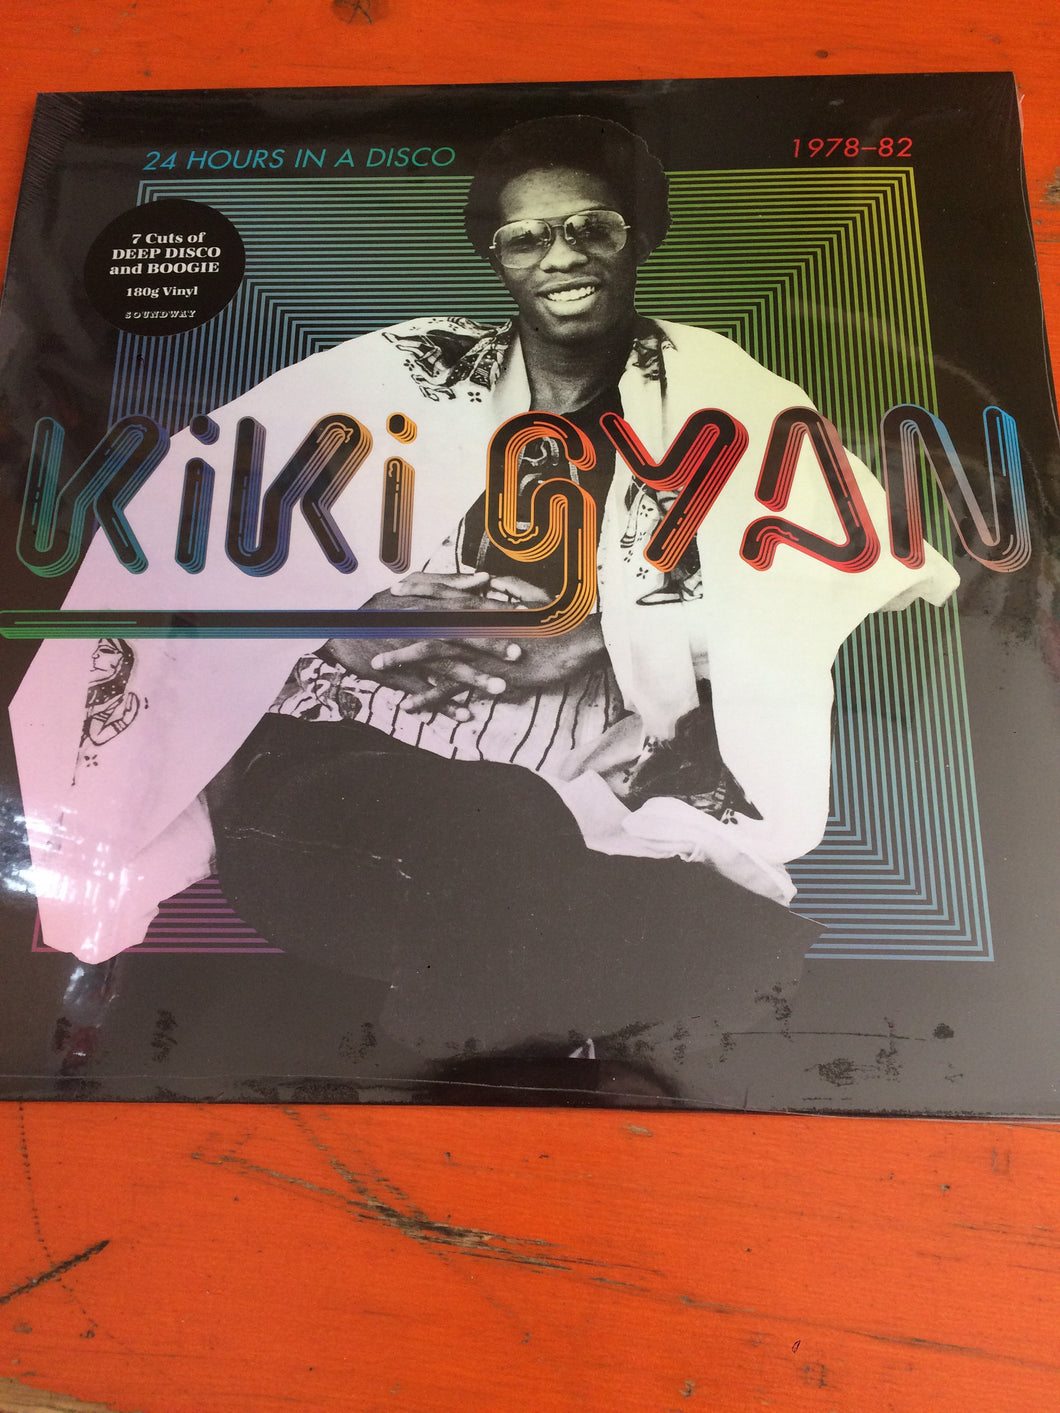 Kiki Gyan - 24 Hours in a Disco 1978 - 1982